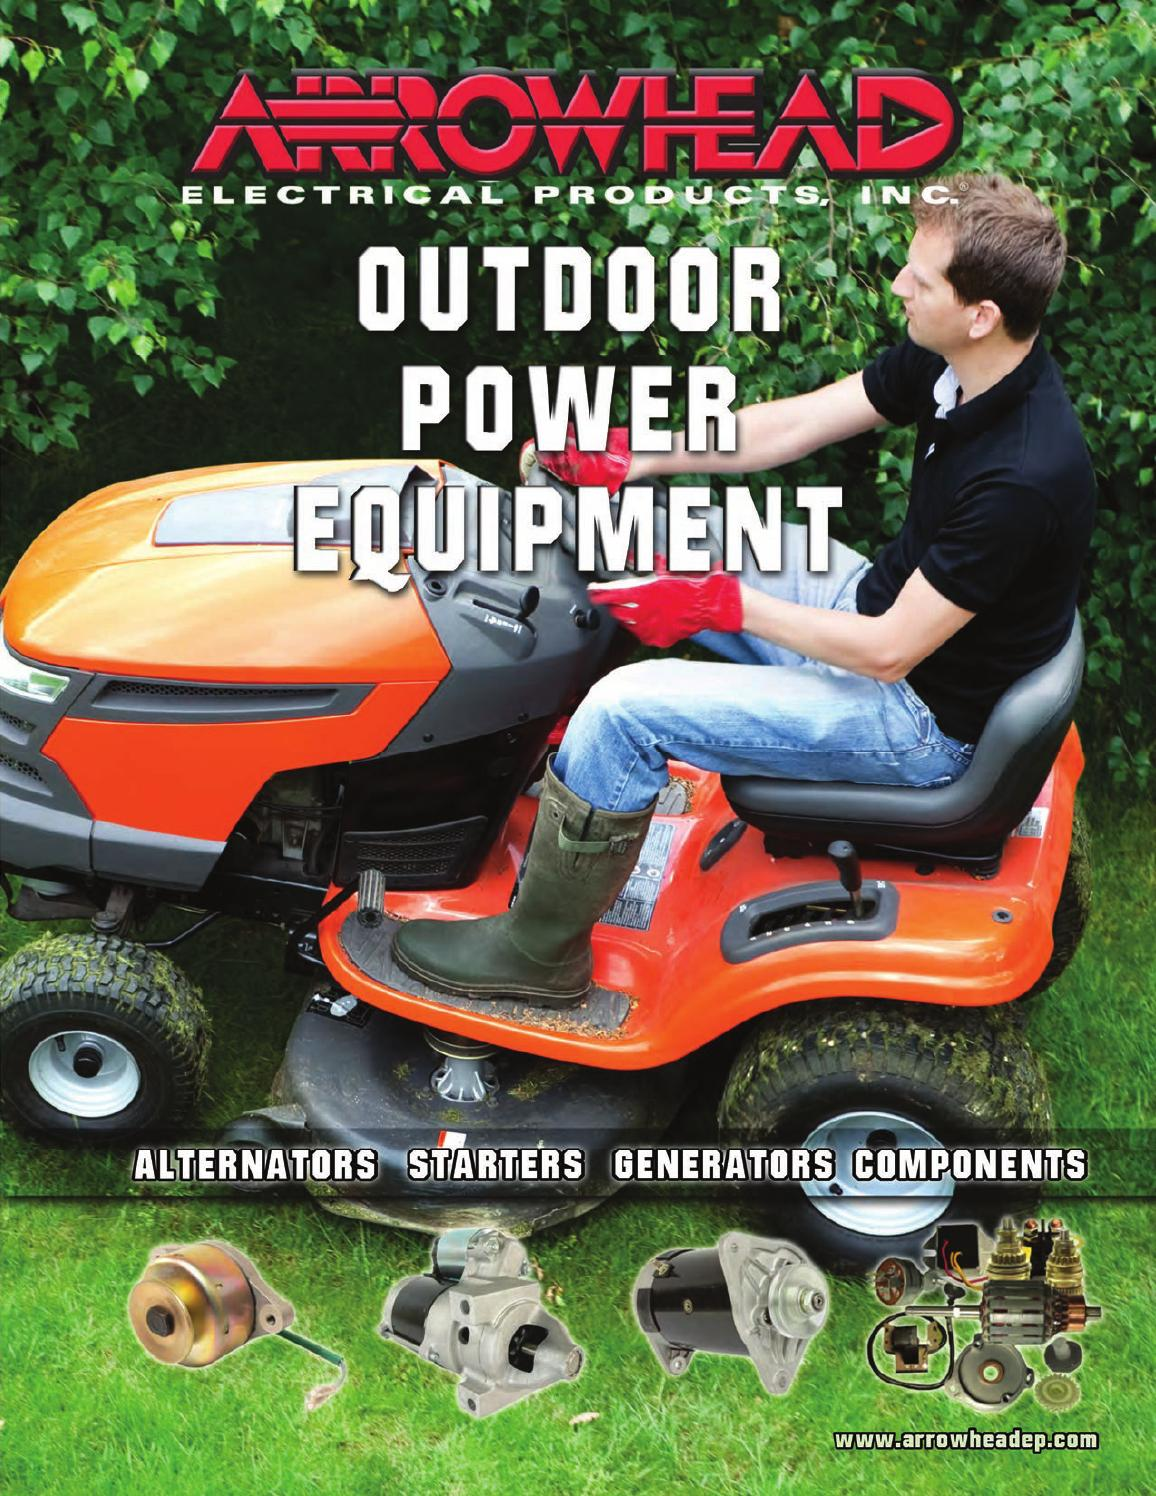 hight resolution of arrowhead electrical products outdoor power equipment catalog 2013 by arrowhead electrical products issuu